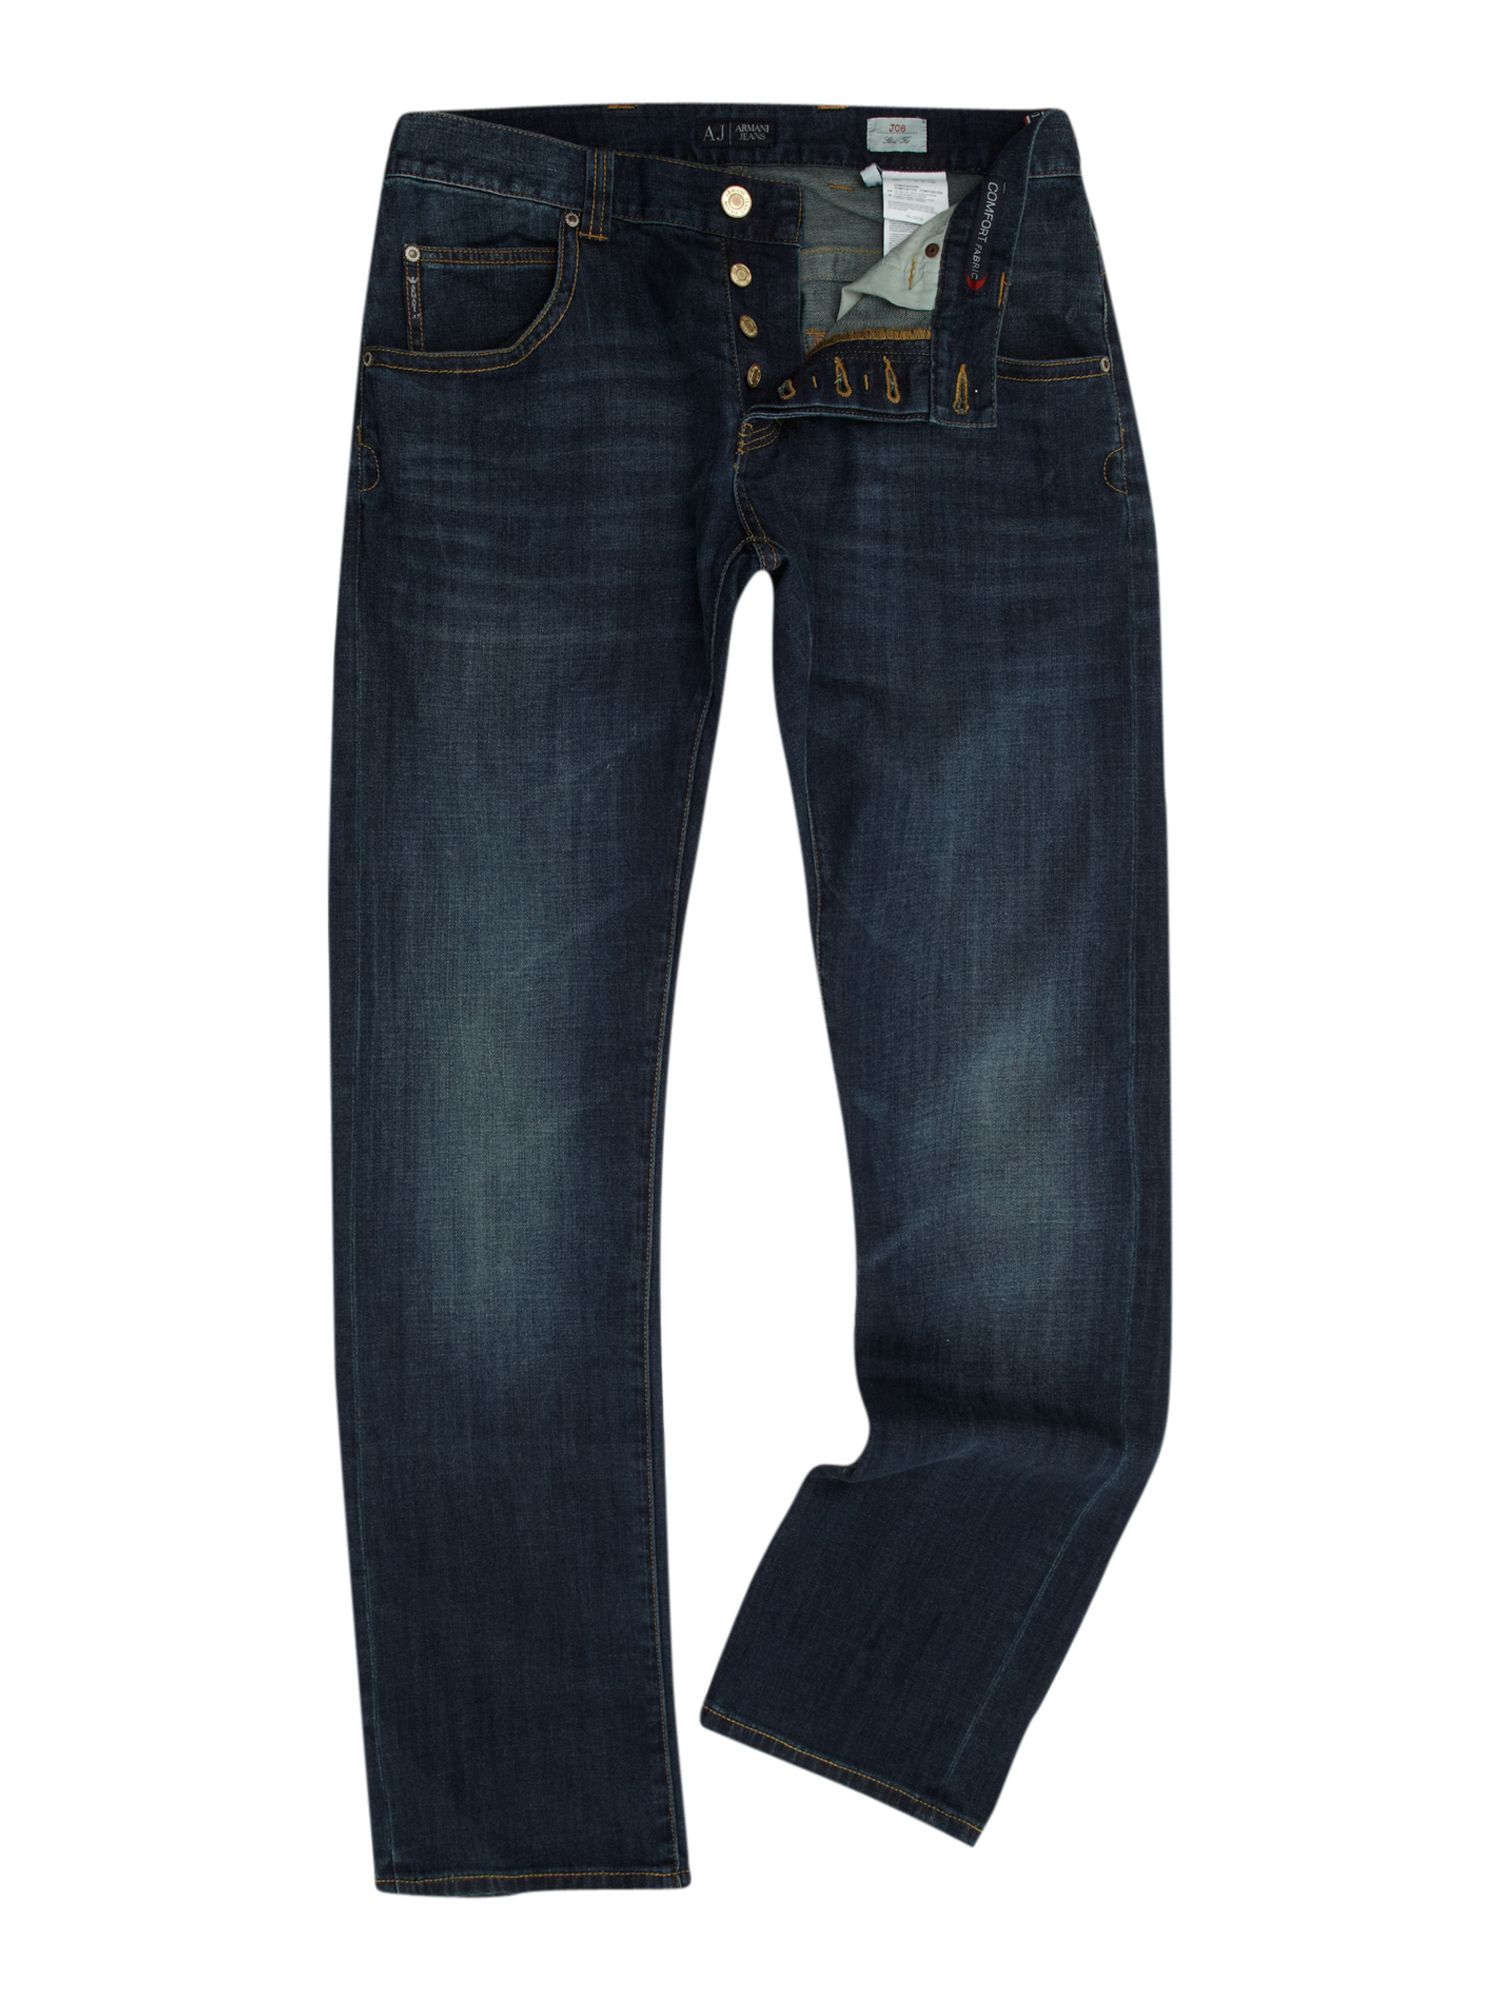 J08 slim fit gold eagle jeans